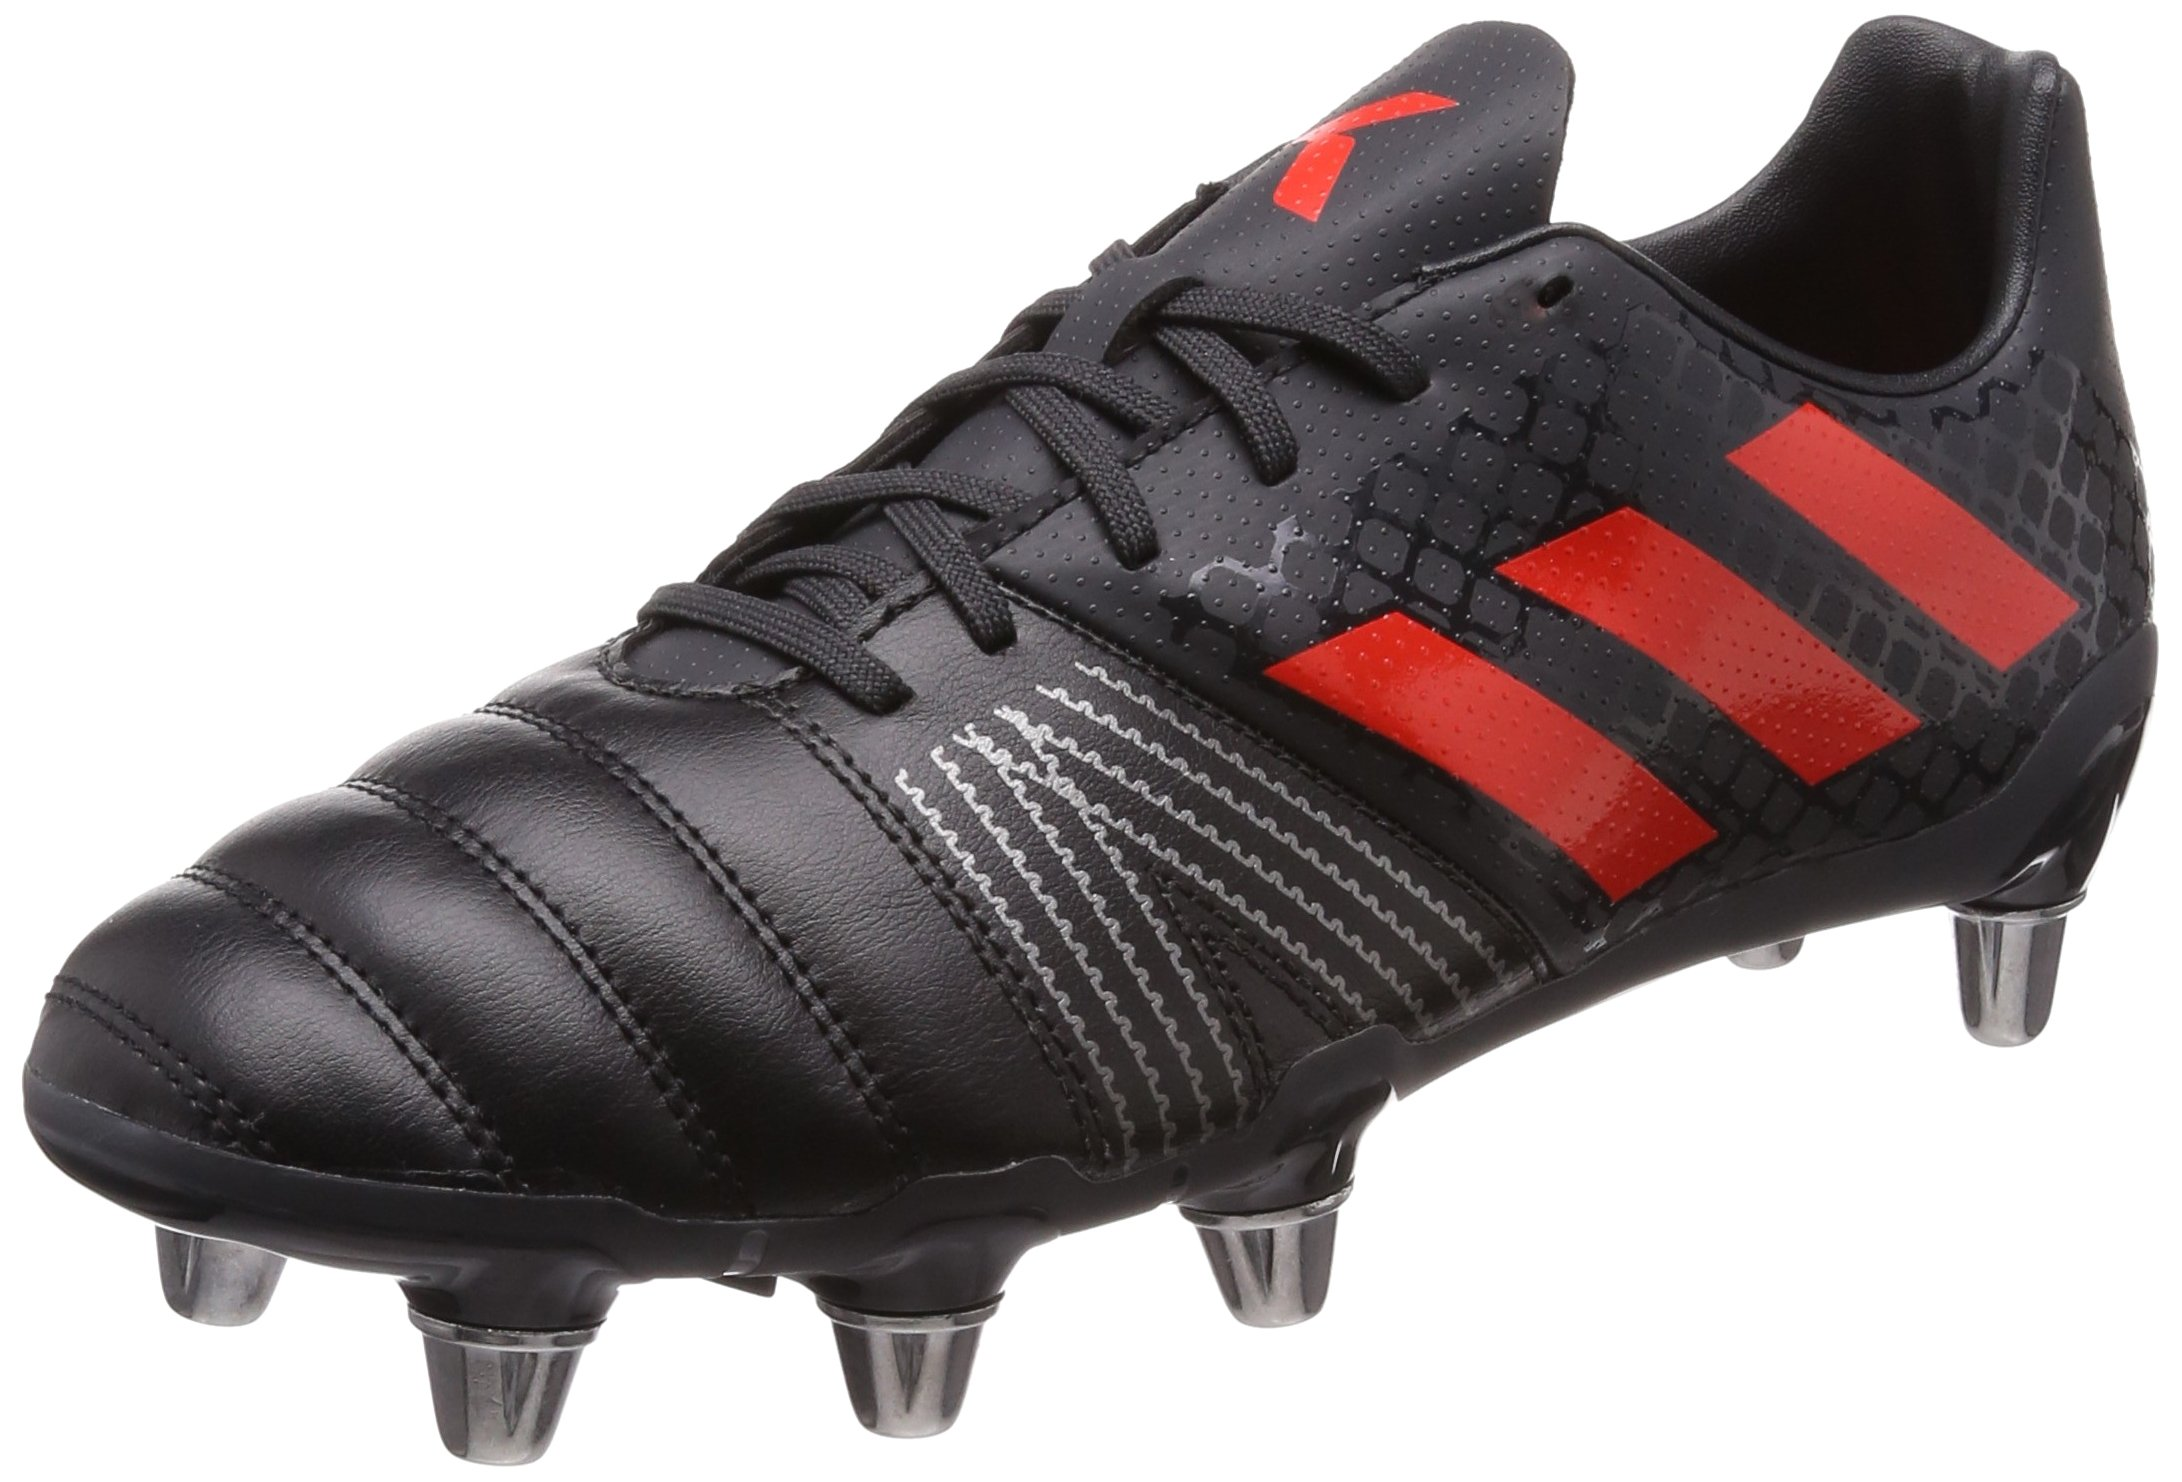 Kakari (SG) Rugby Boots - LBrown